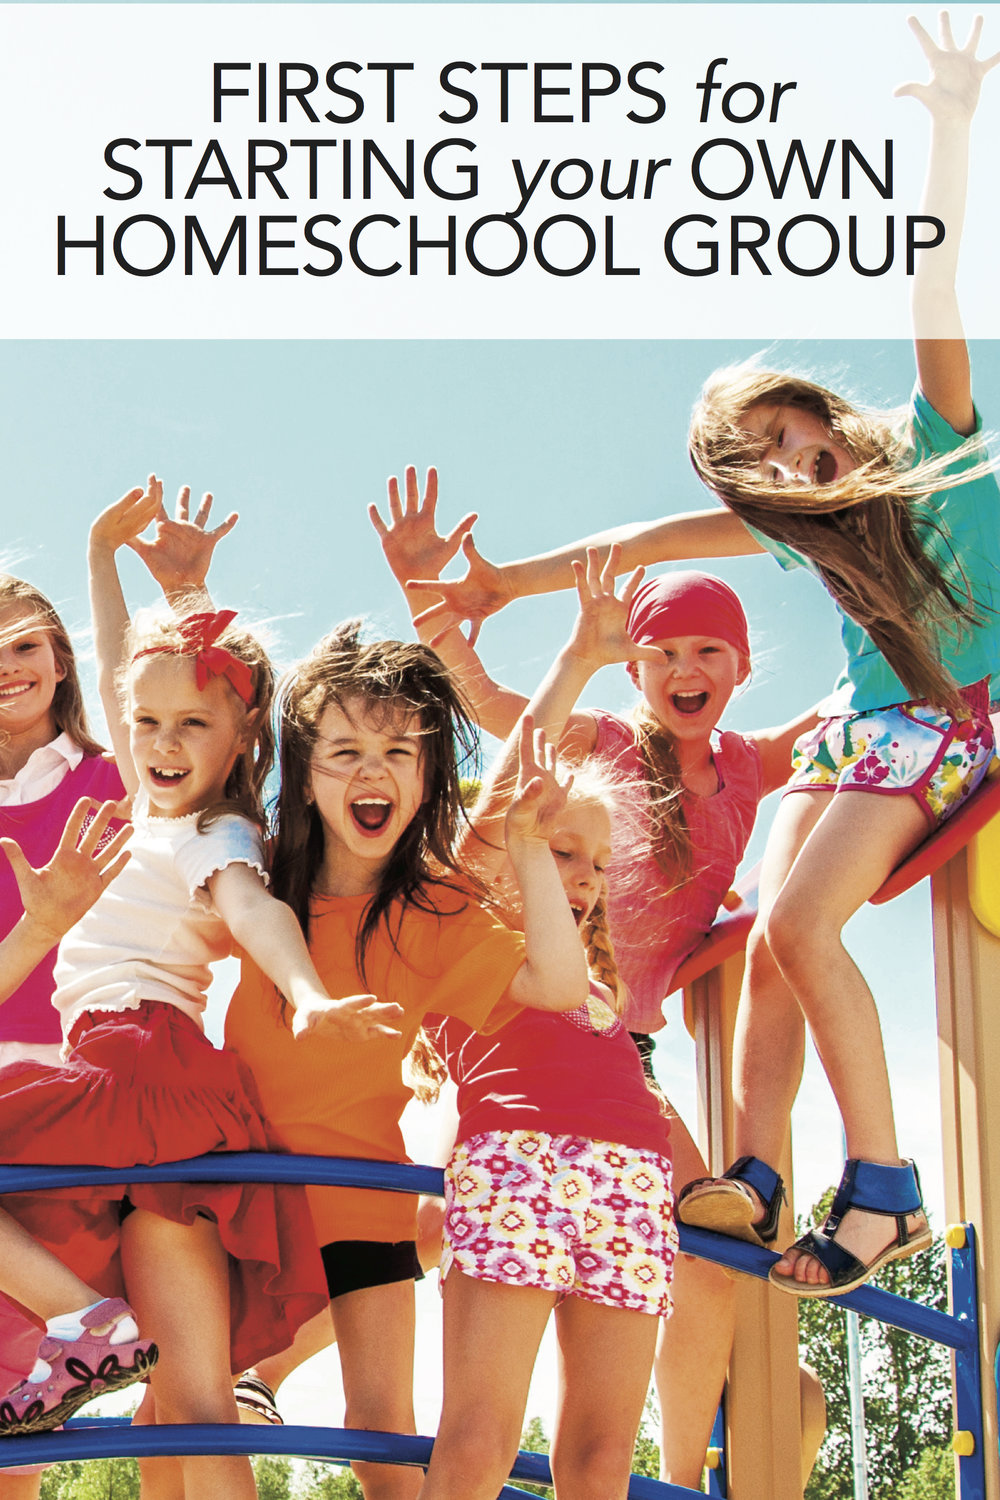 Step-by-step guide to starting your own homeschool group from home/school/life magazine: Part 1 of 3 #homeschool